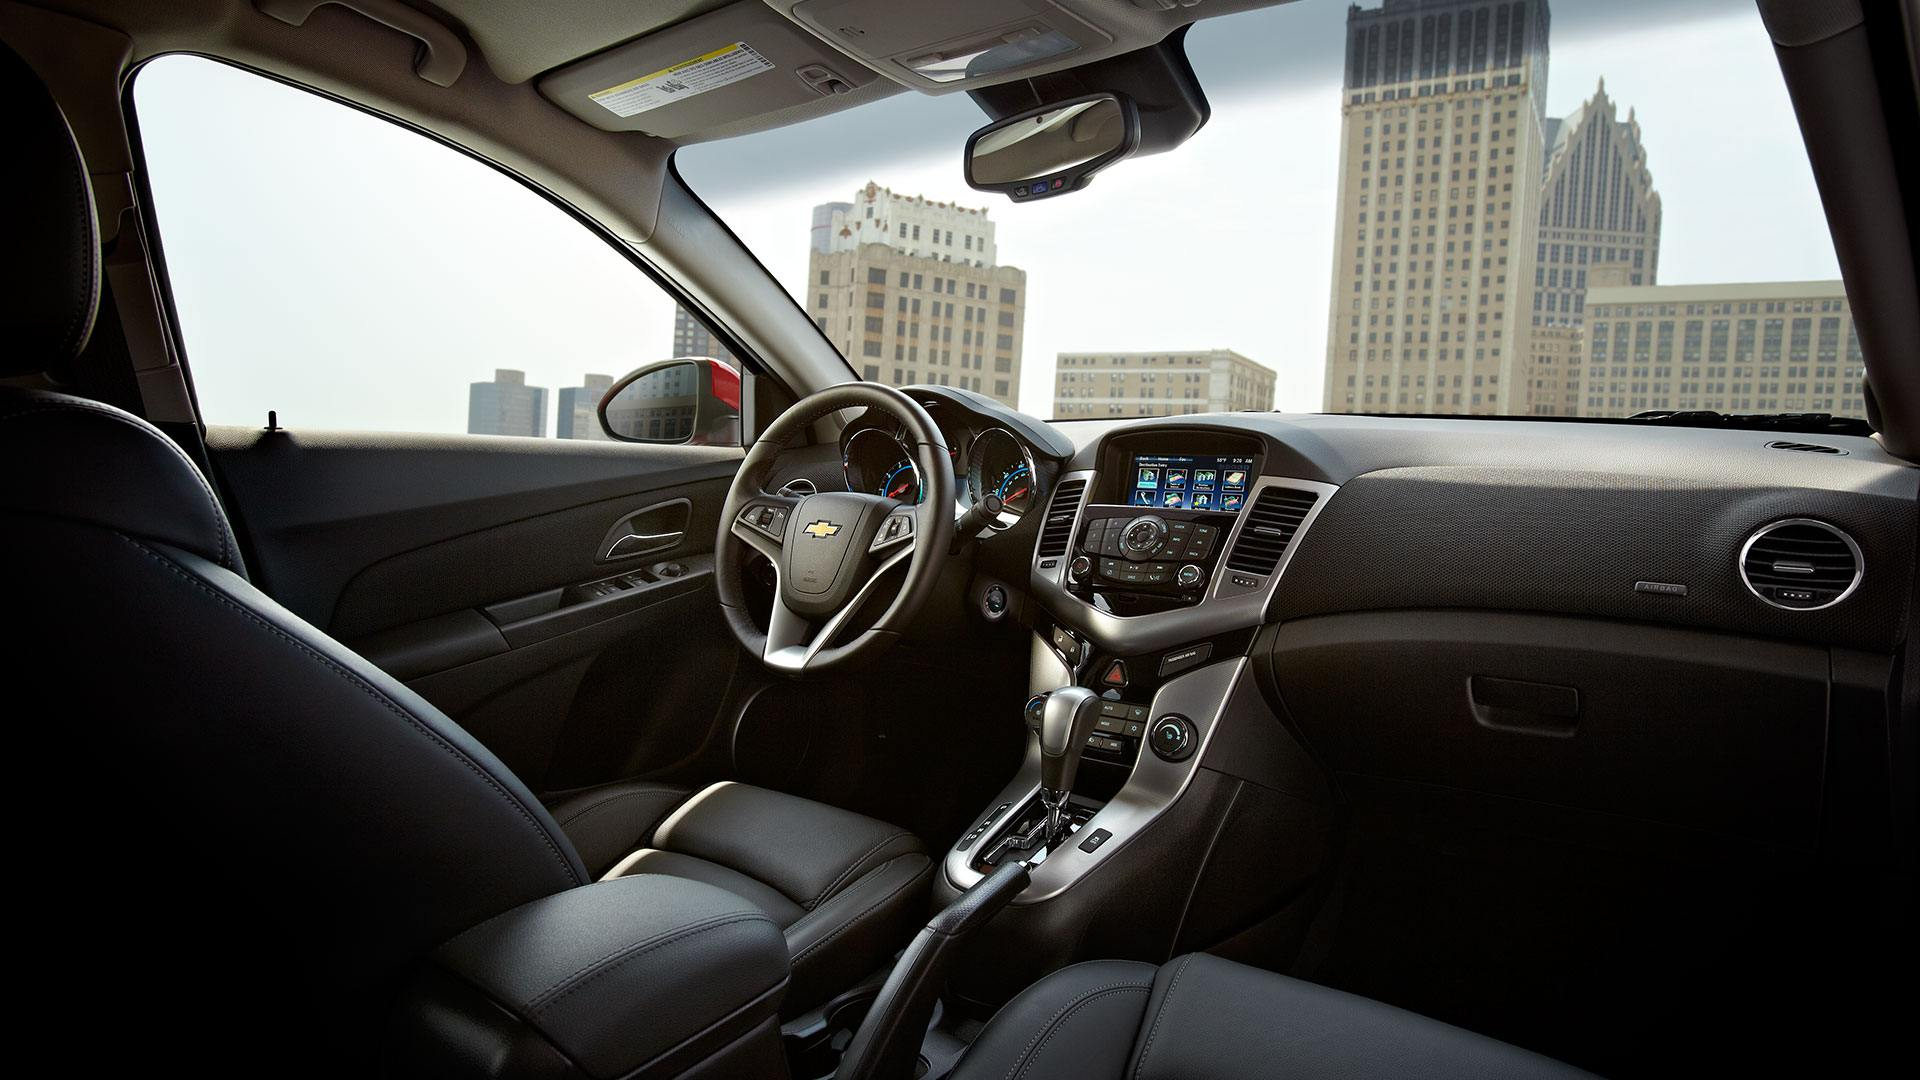 2014-chevy-cruze-interior2